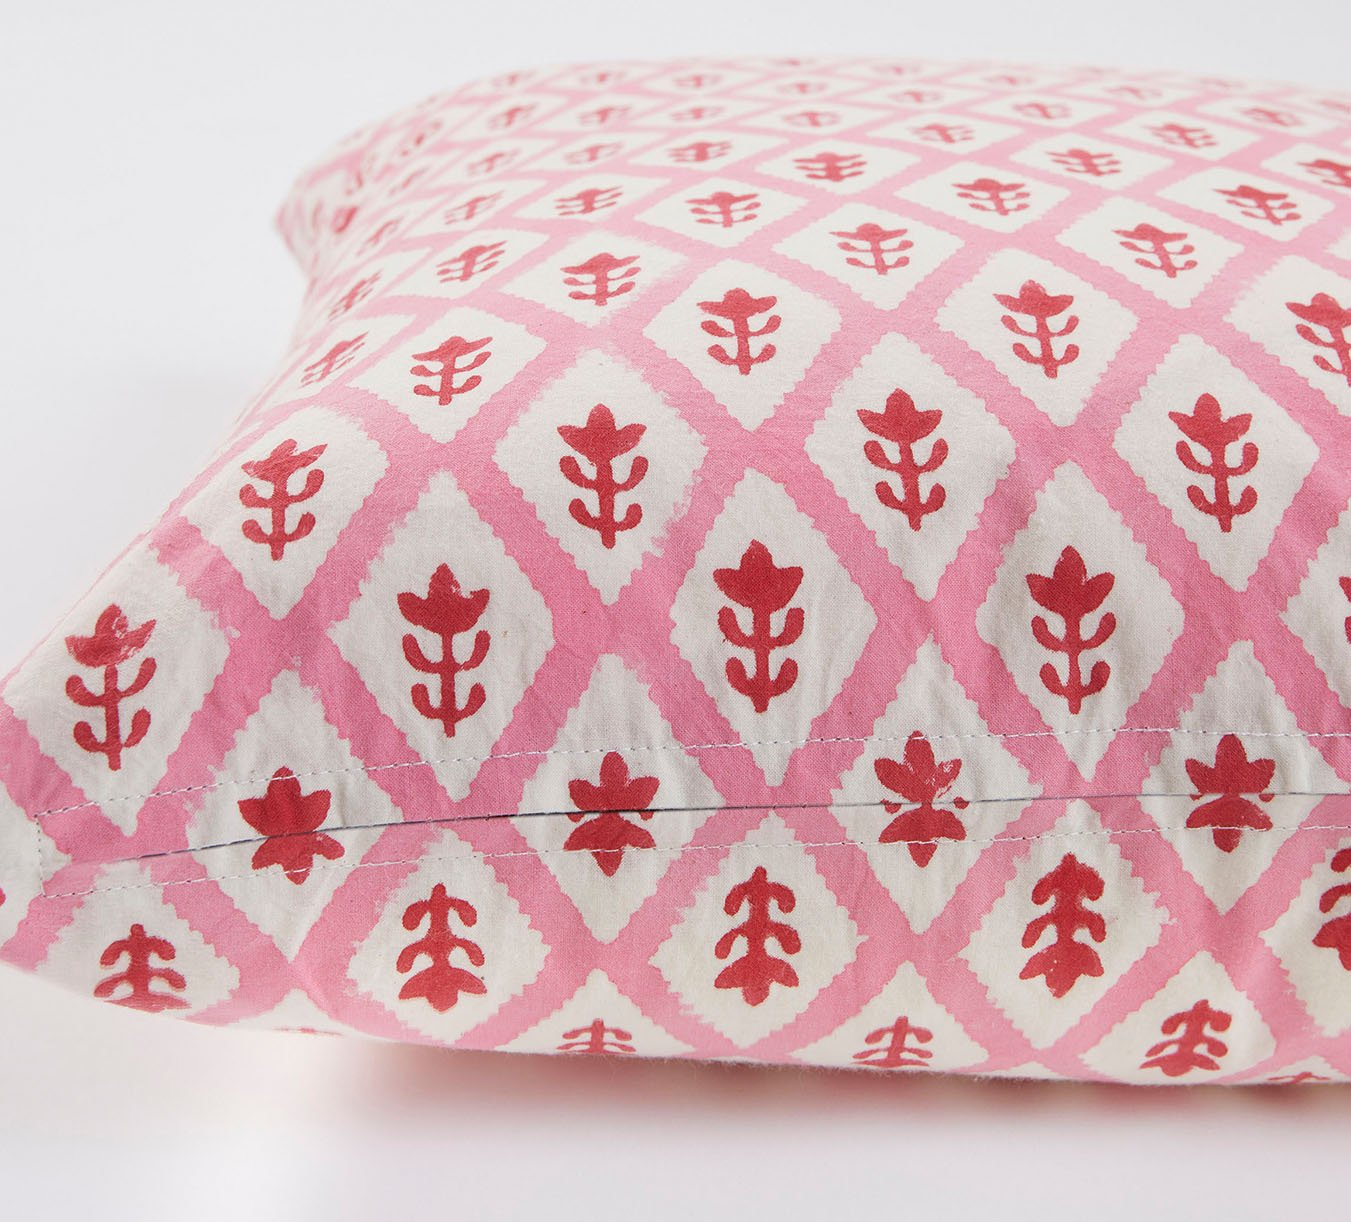 Cushion - Buti - Pink/Red - 70 x 35 cm